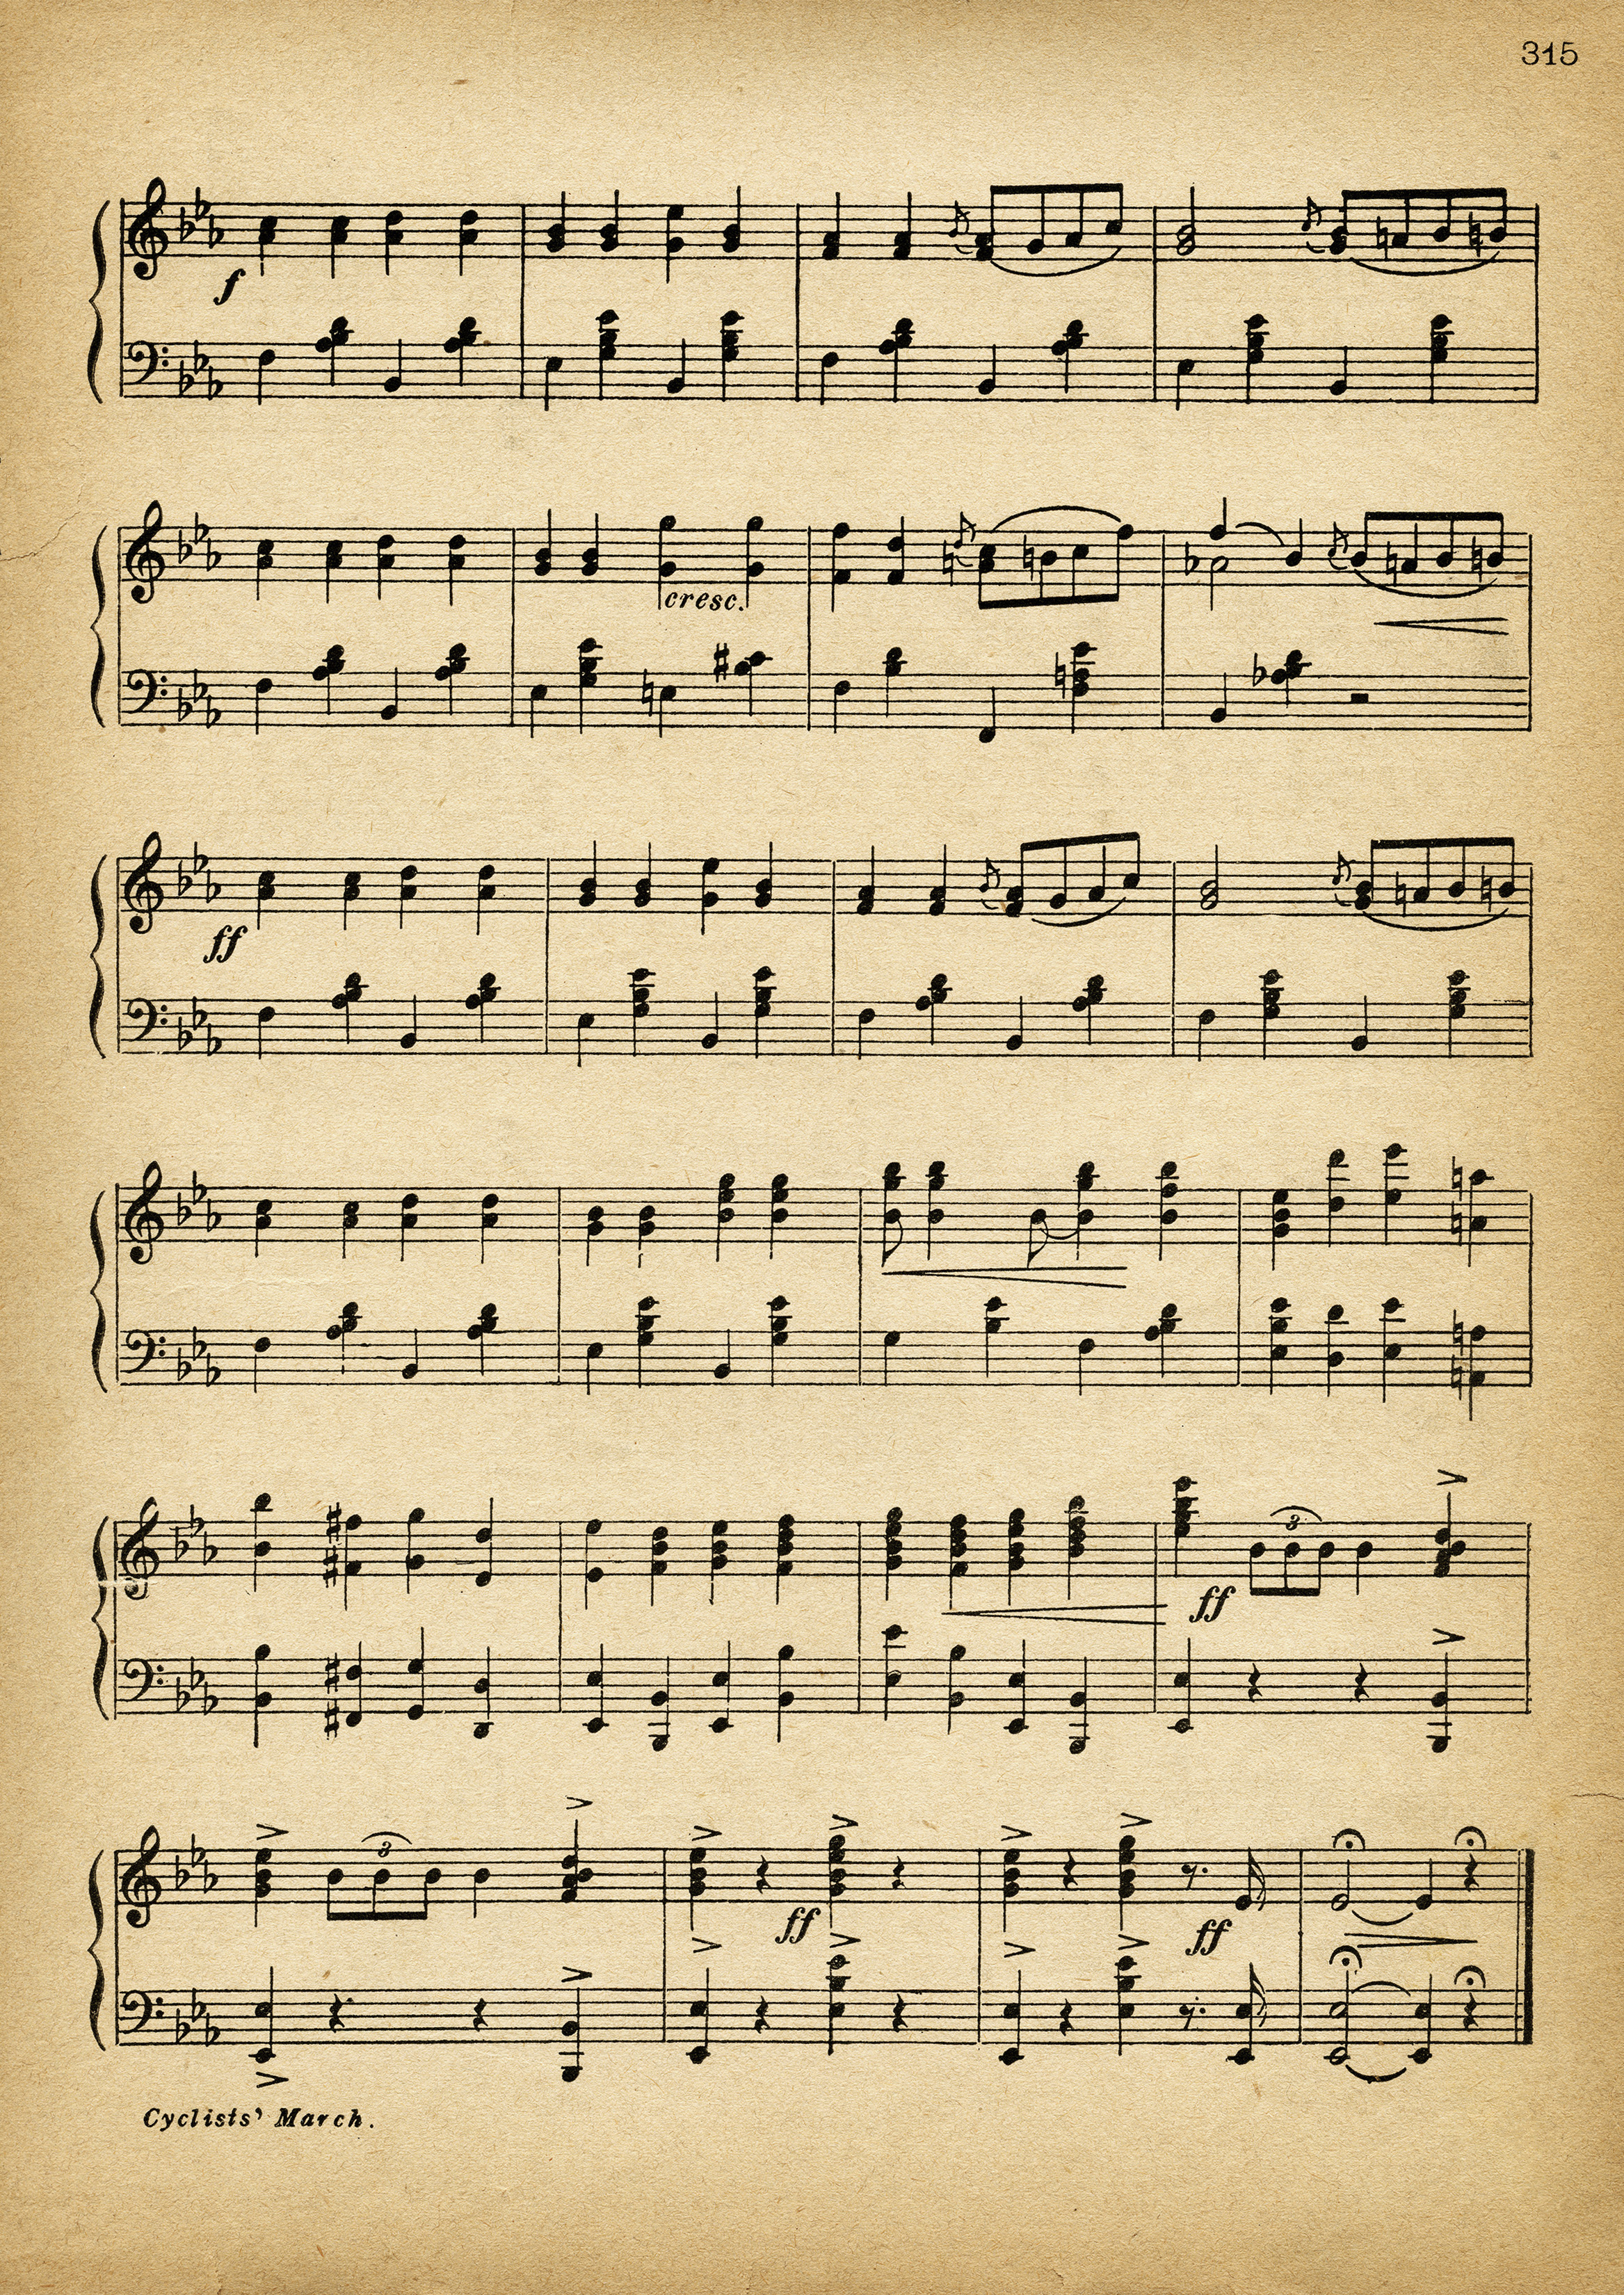 Cyclists' March ~ Free Vintage Sheet Music Pages - Old ...